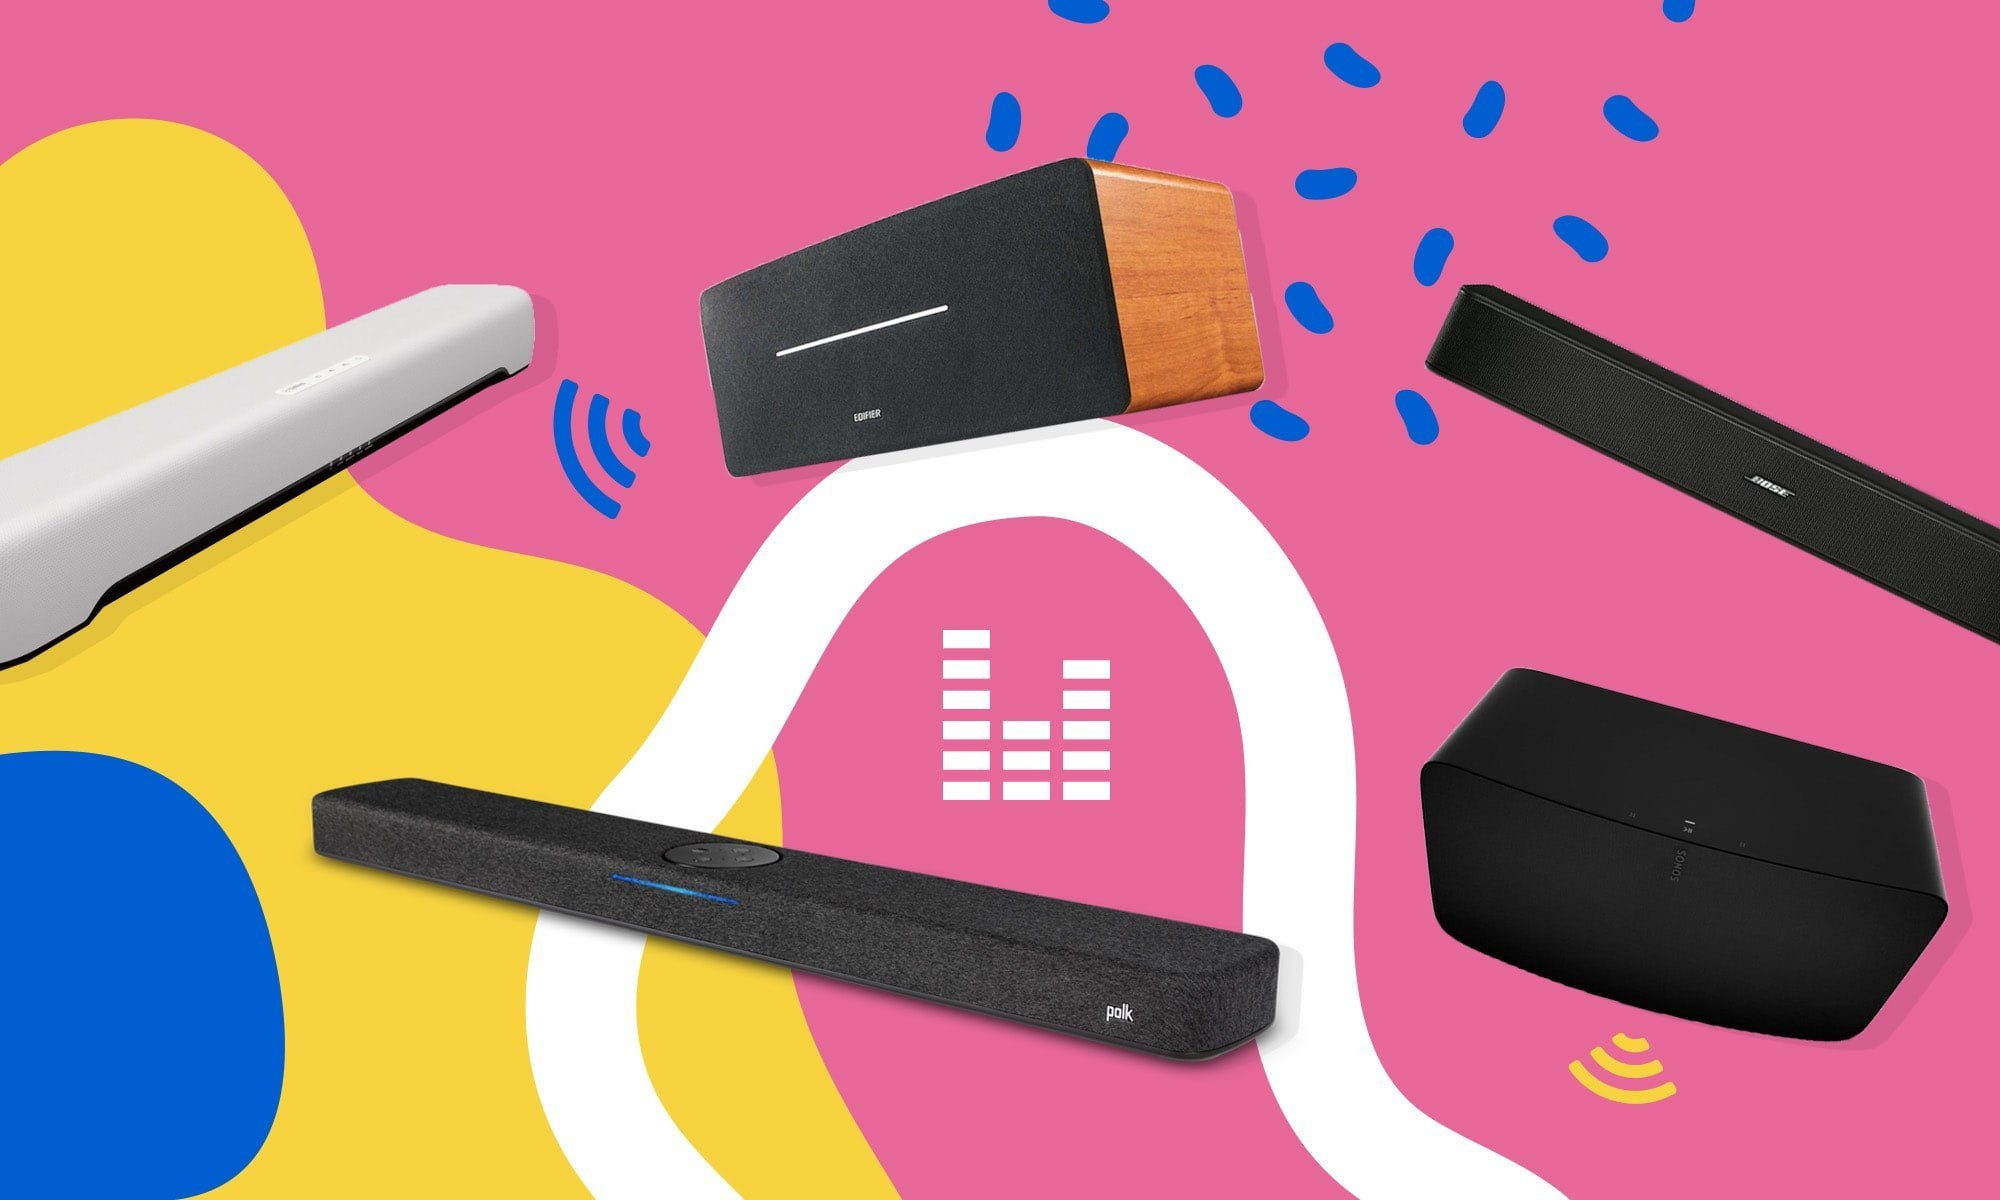 The best home theater devices and accessories: soundbars, speakers, and more